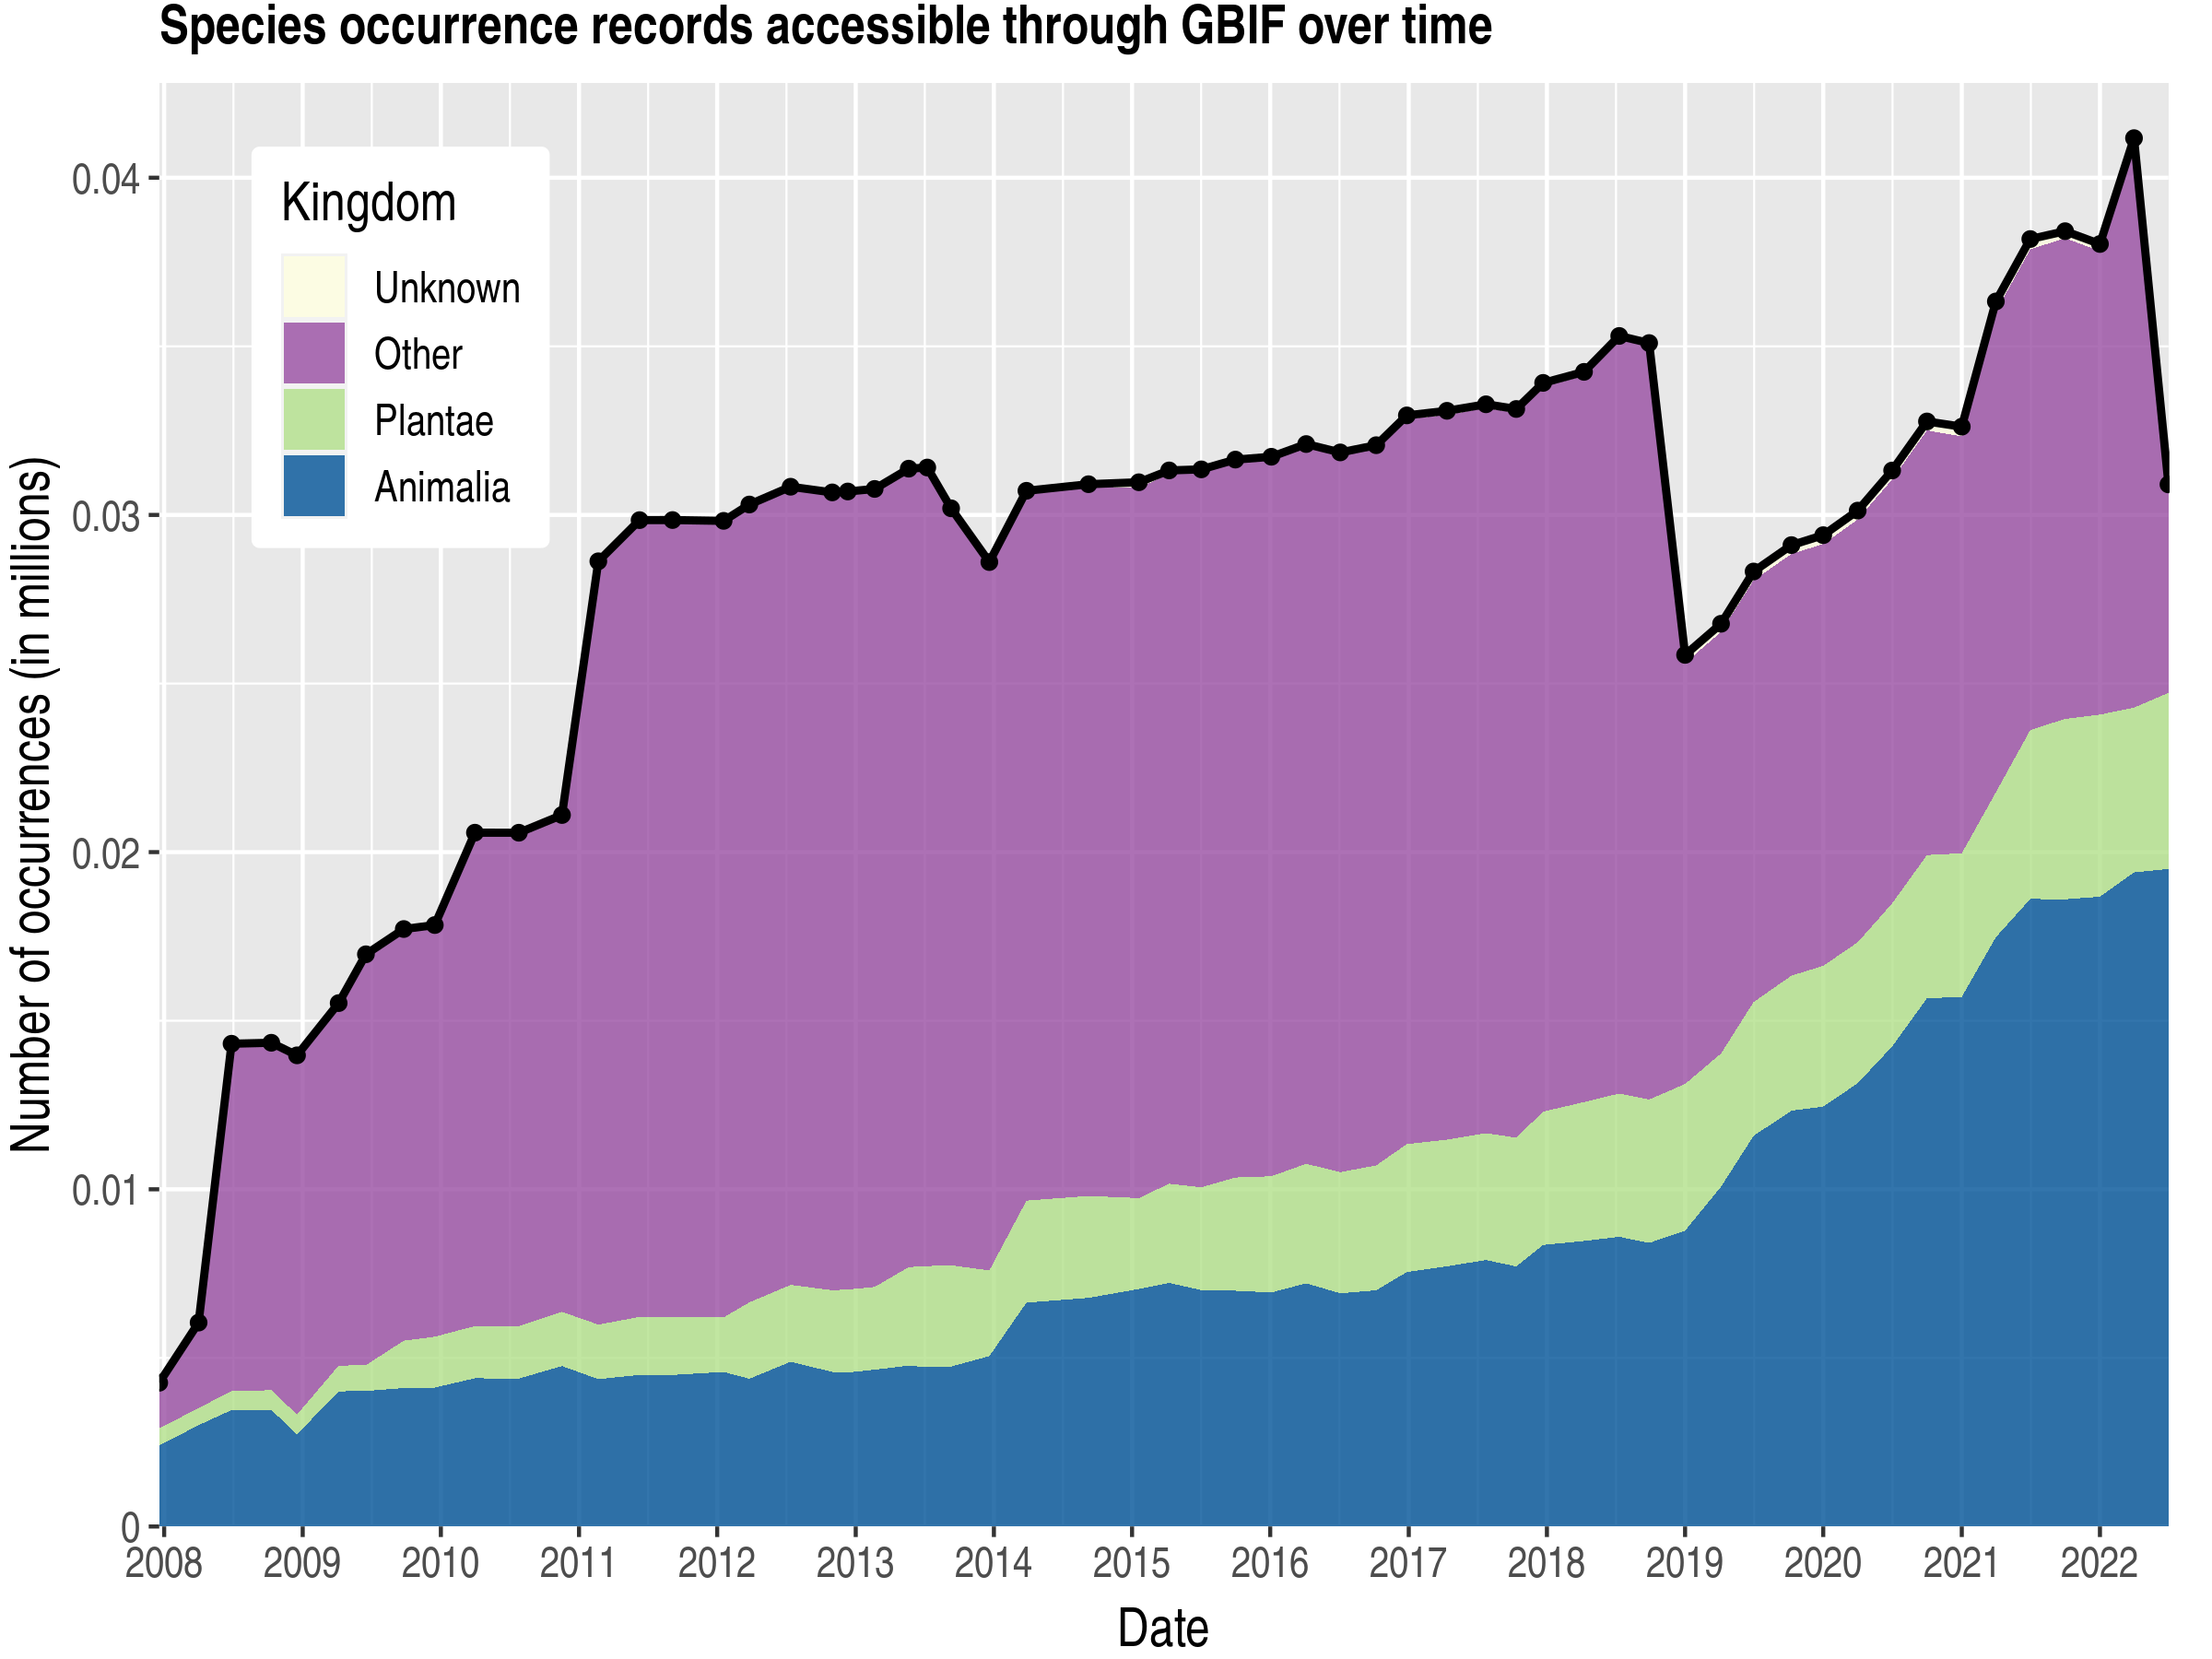 Data trend of records by kingdom about Saint Helena, Ascension and Tristan da Cunha